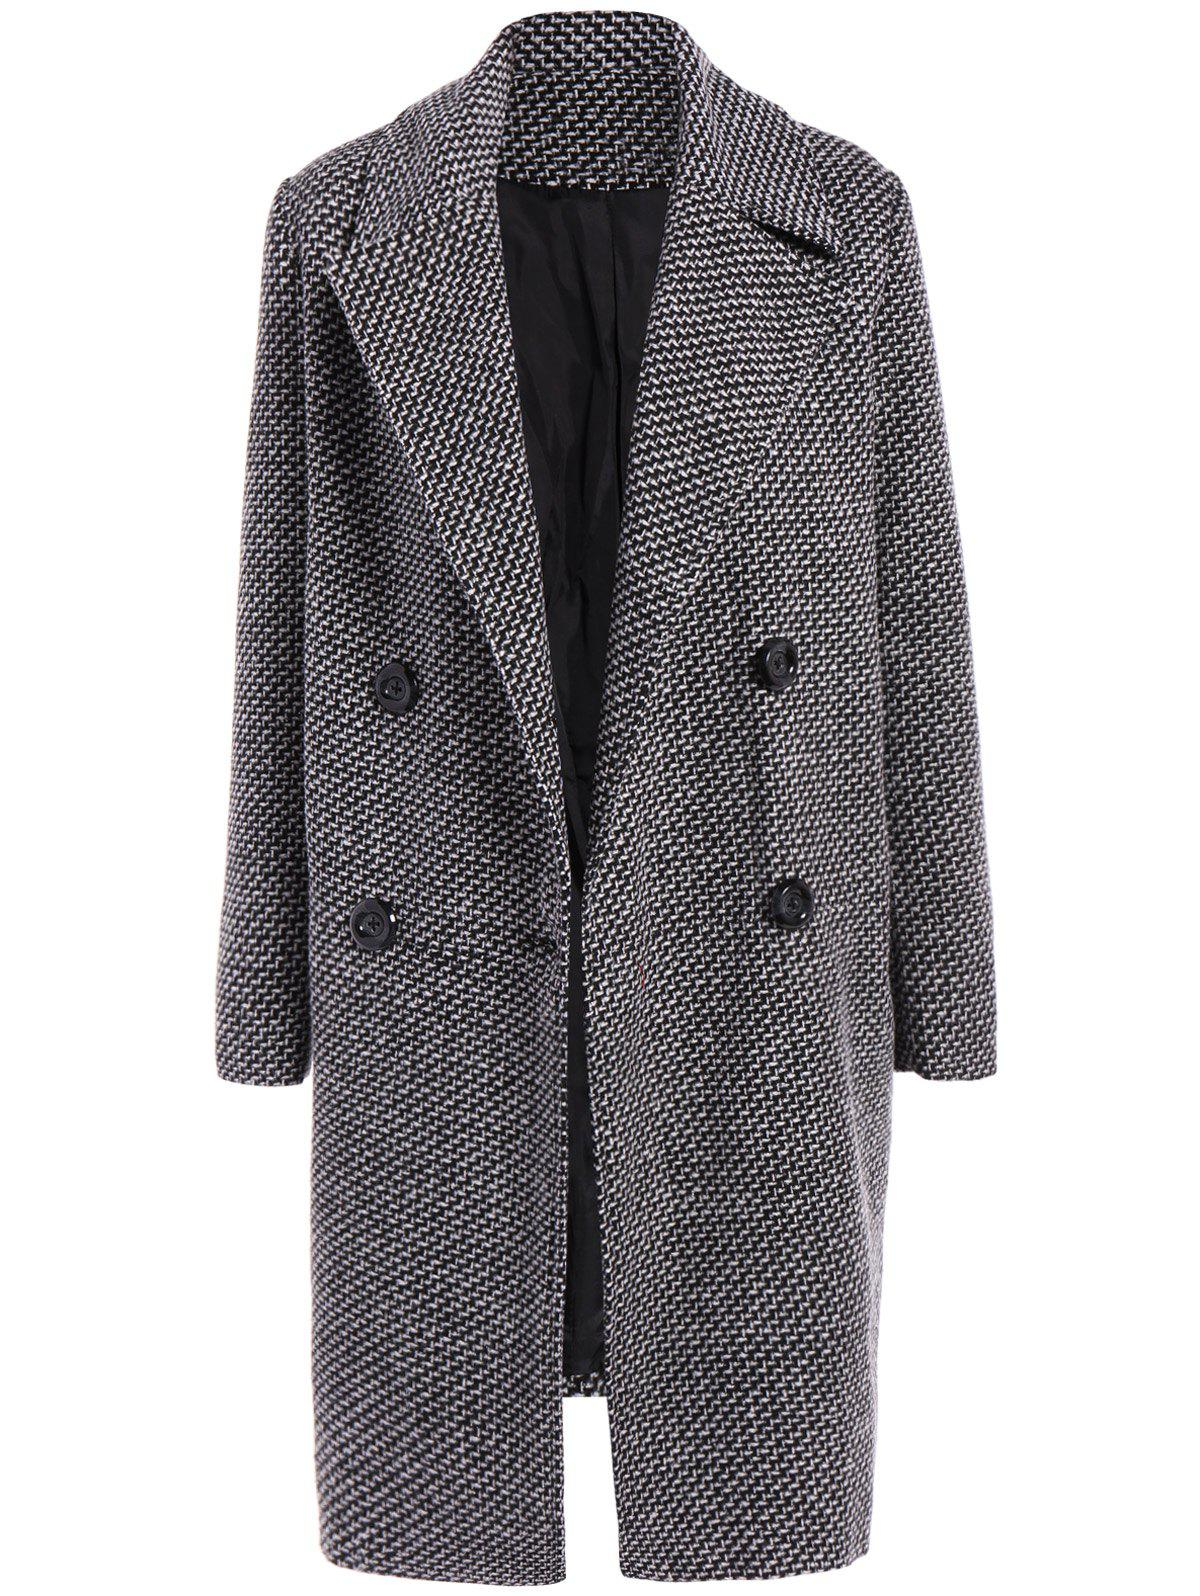 Checked Buttoned Wool Coat - BLACK XL